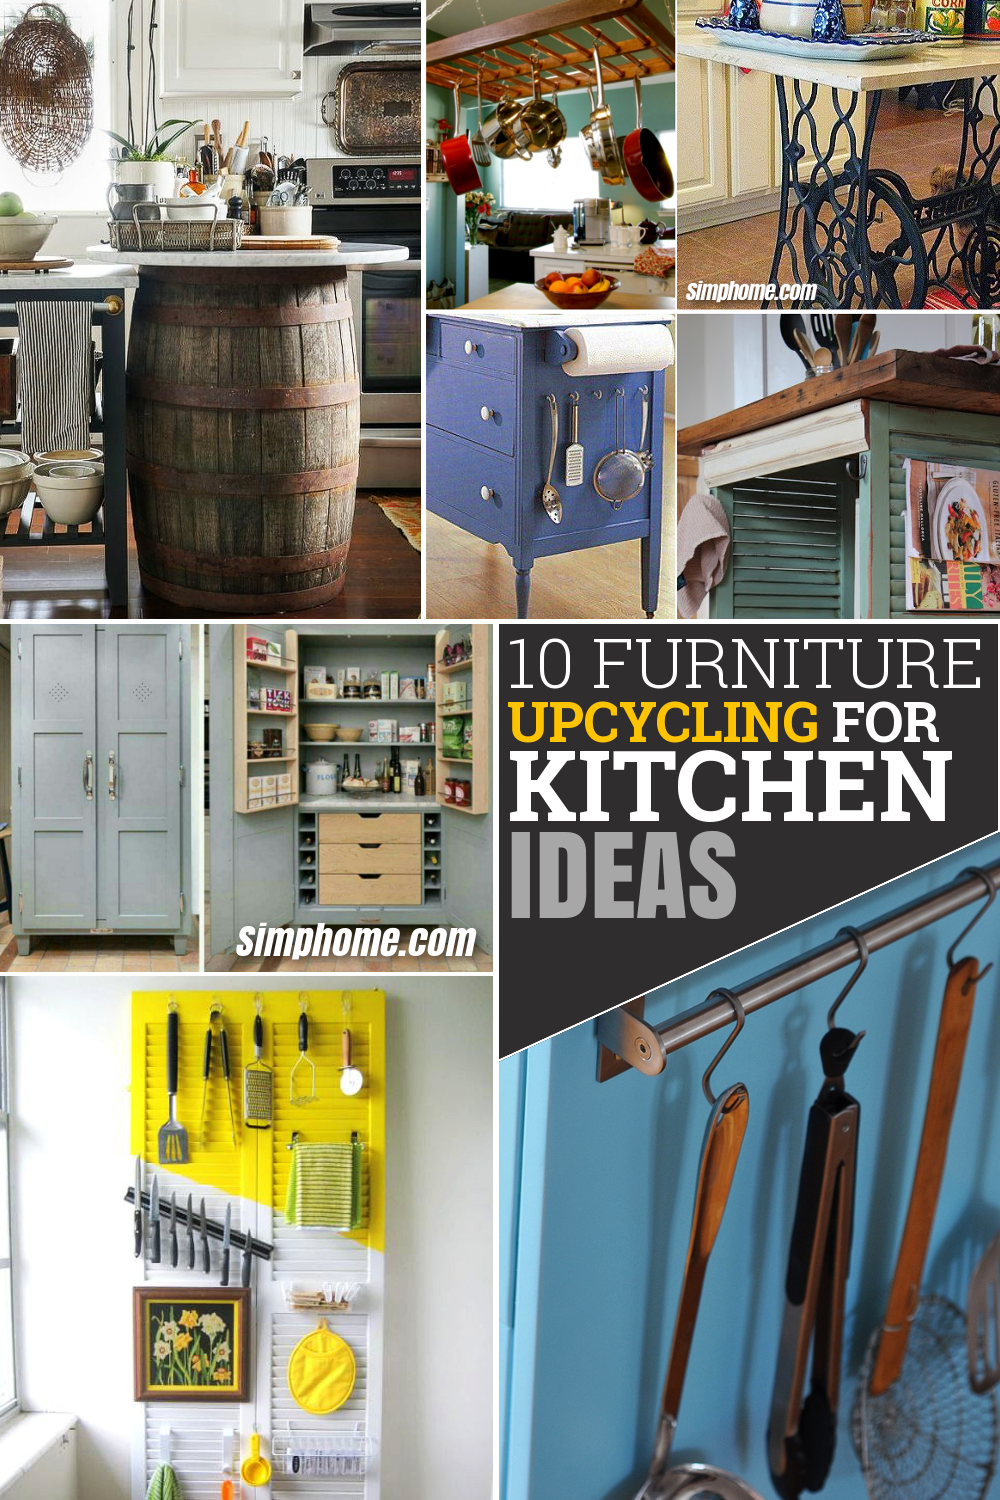 10 Furniture Upcycling for Kitchen ideas via Simphome.com Pinterest image